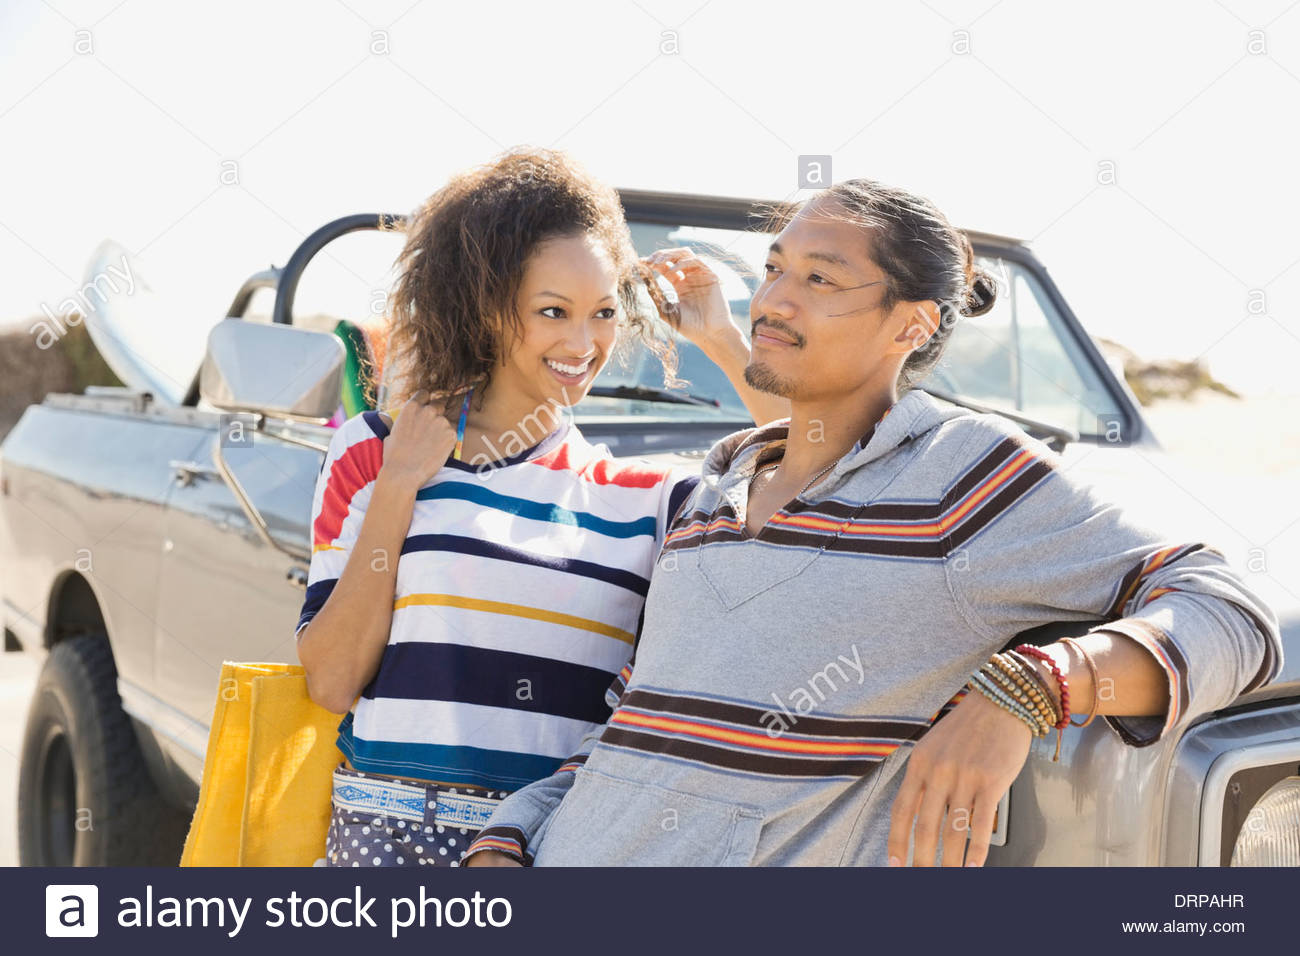 Multiethnic couple leaning against off-road vehicle - Stock Image